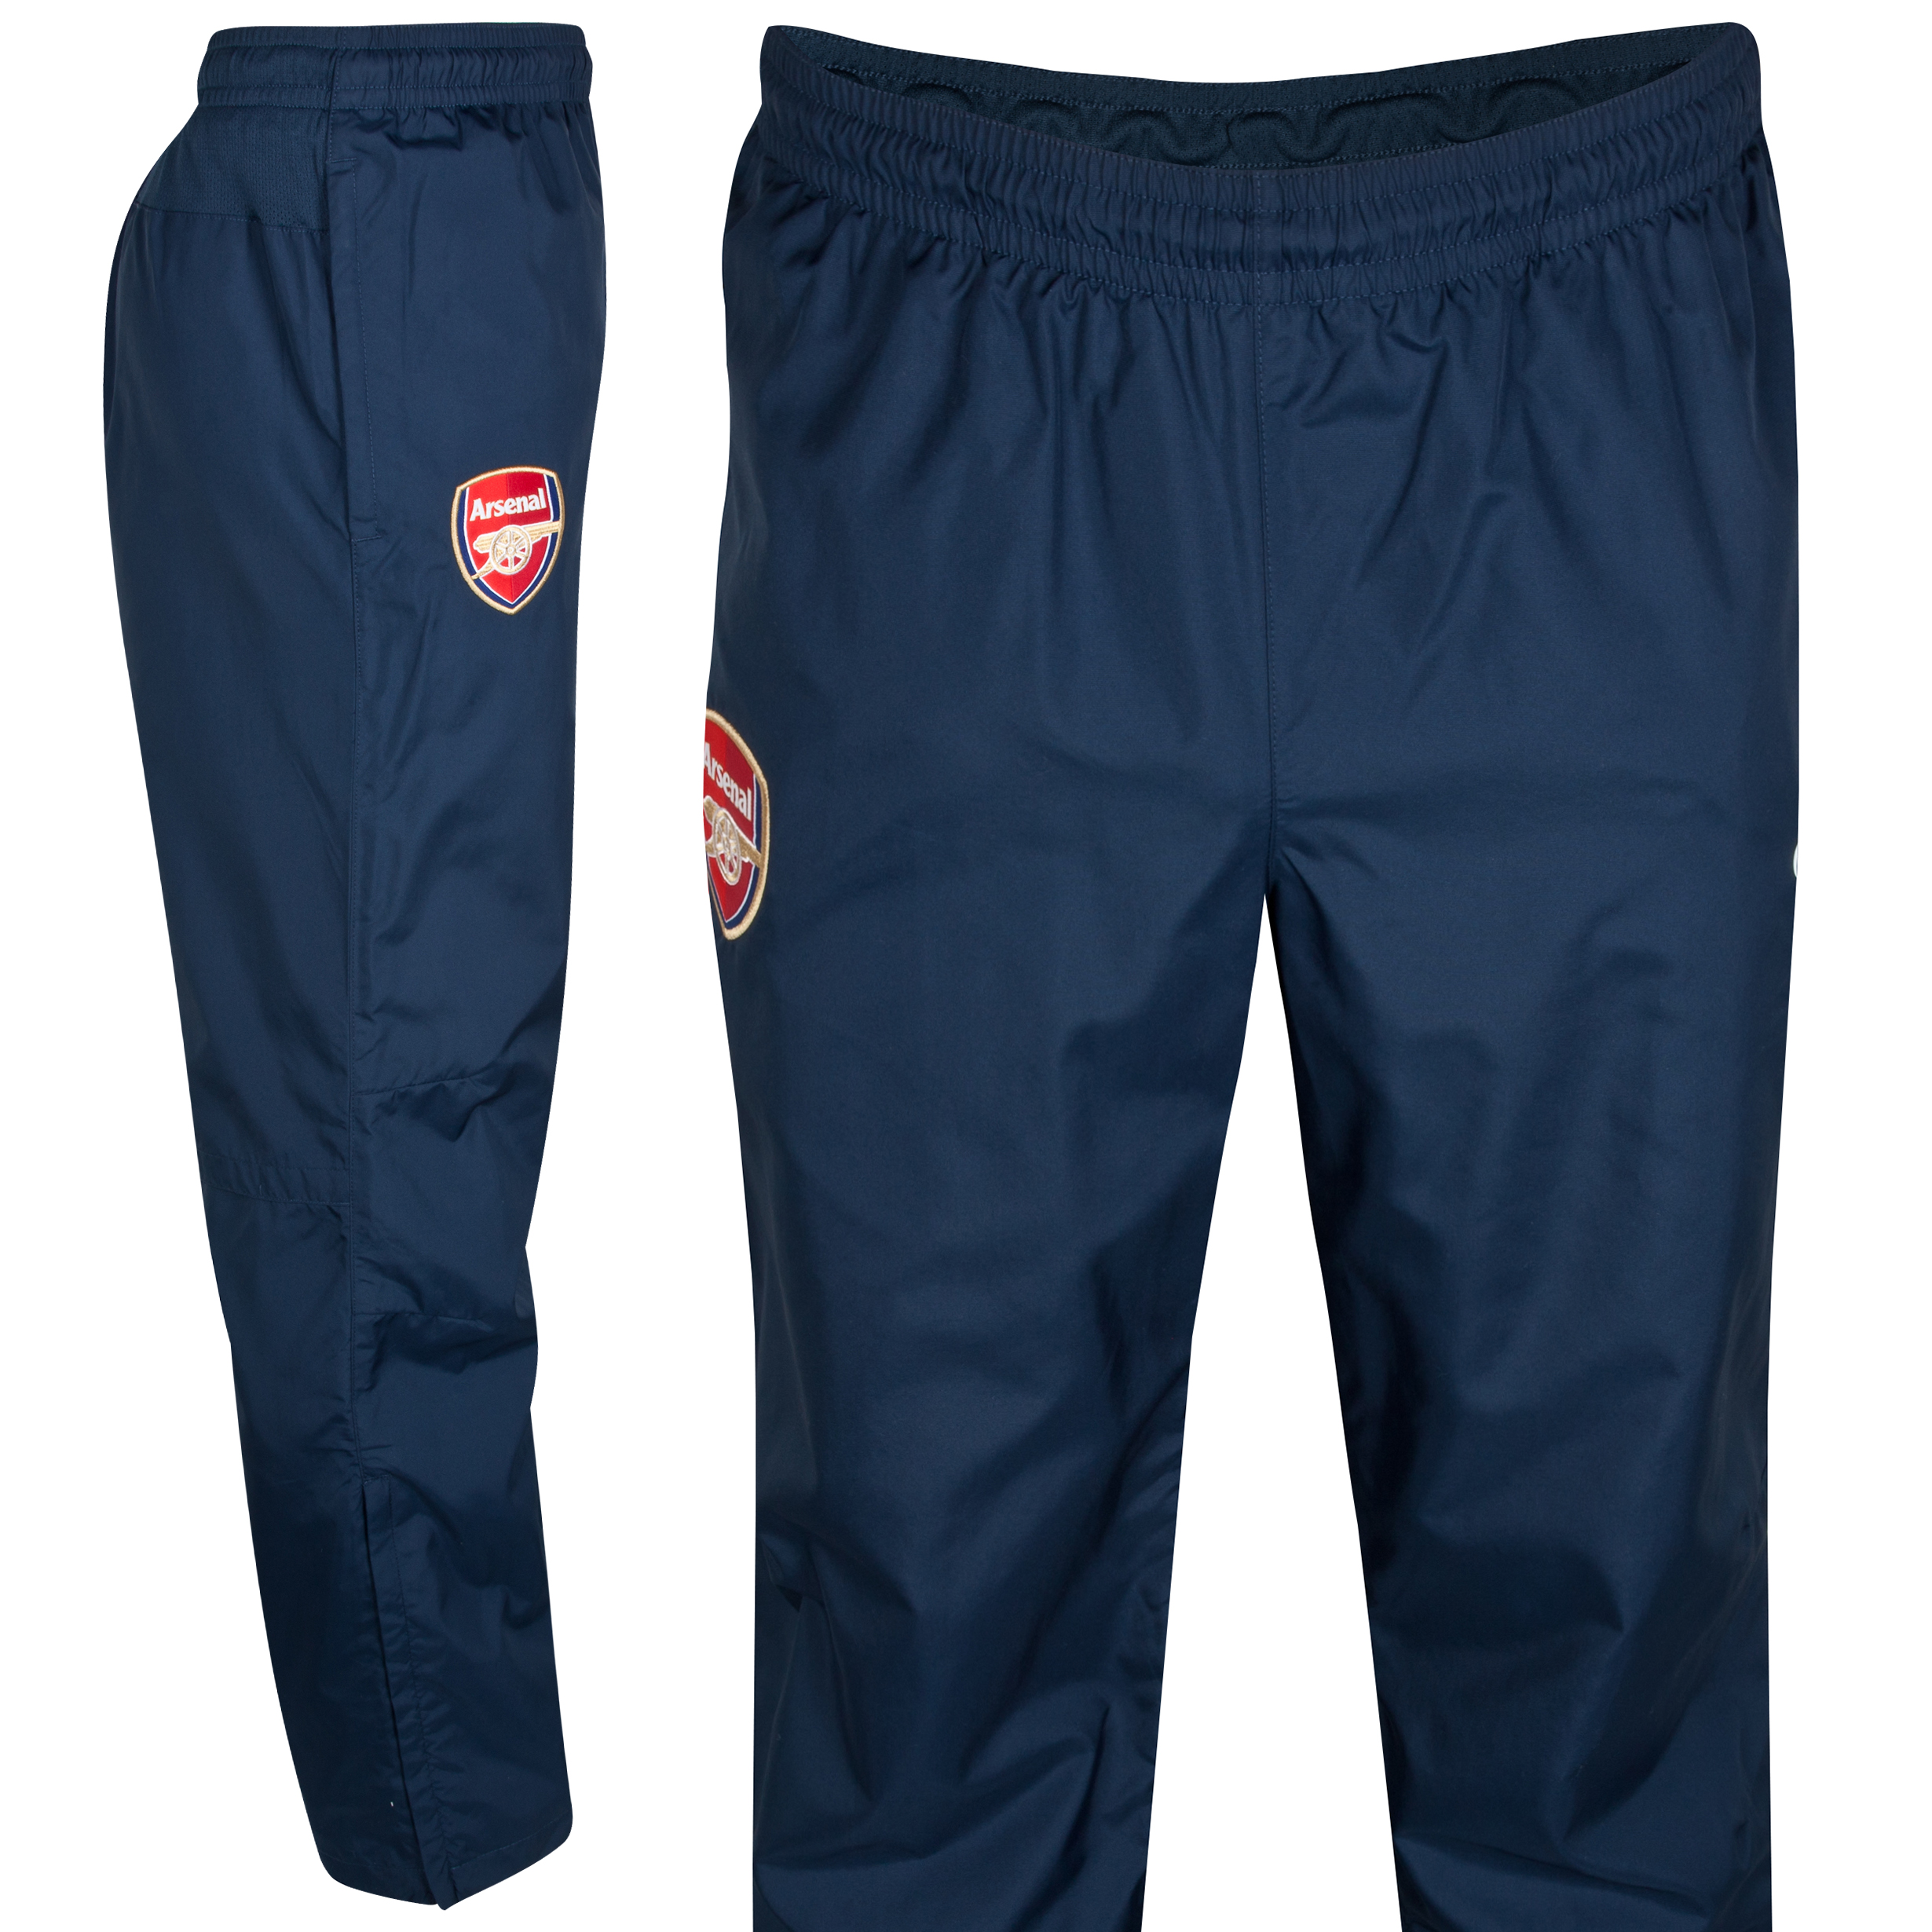 Arsenal Sideline Woven Pant - Light Midnight/White